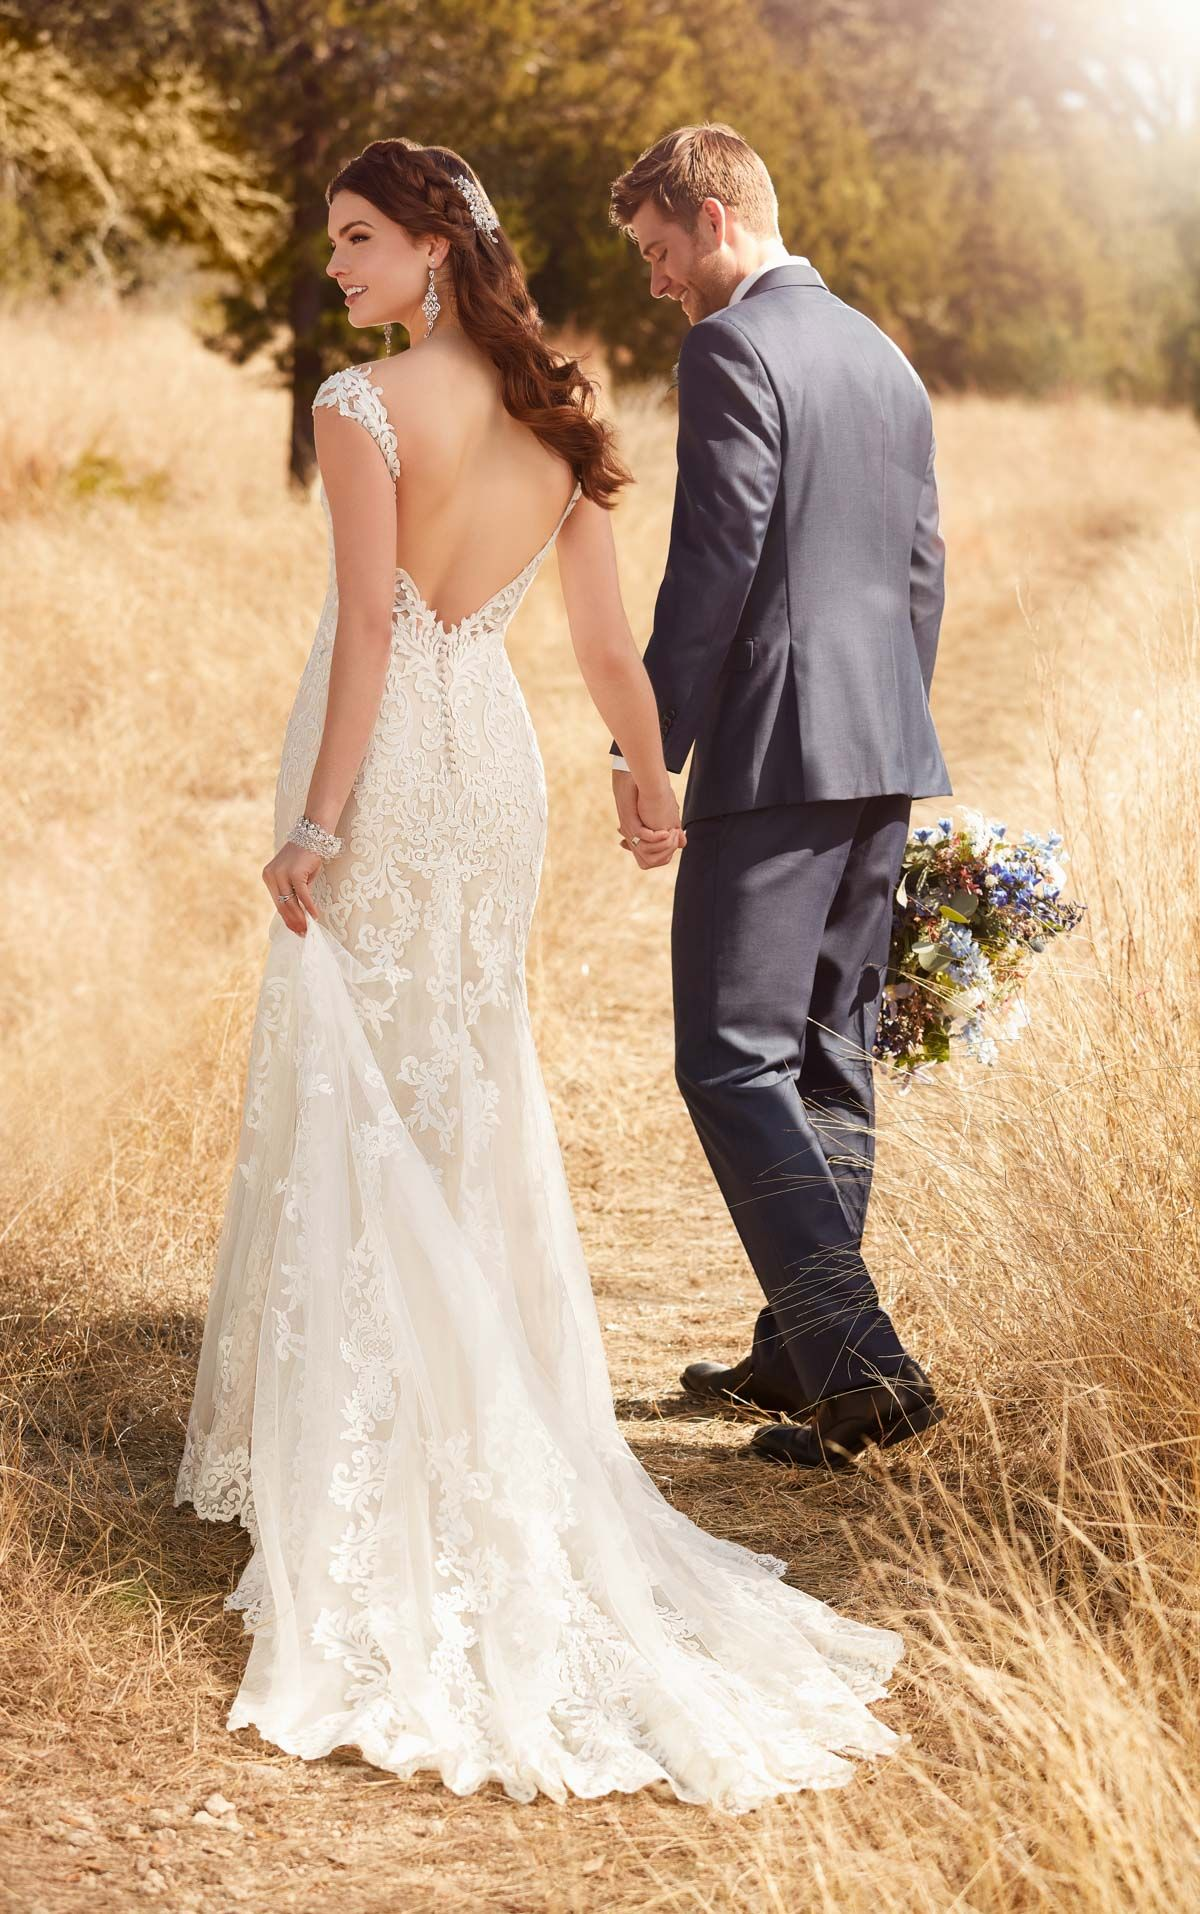 This backless wedding dress is the ethereal wedding dress brides love! A relaxed column shape feels casual while remaining true to classic bridal style.